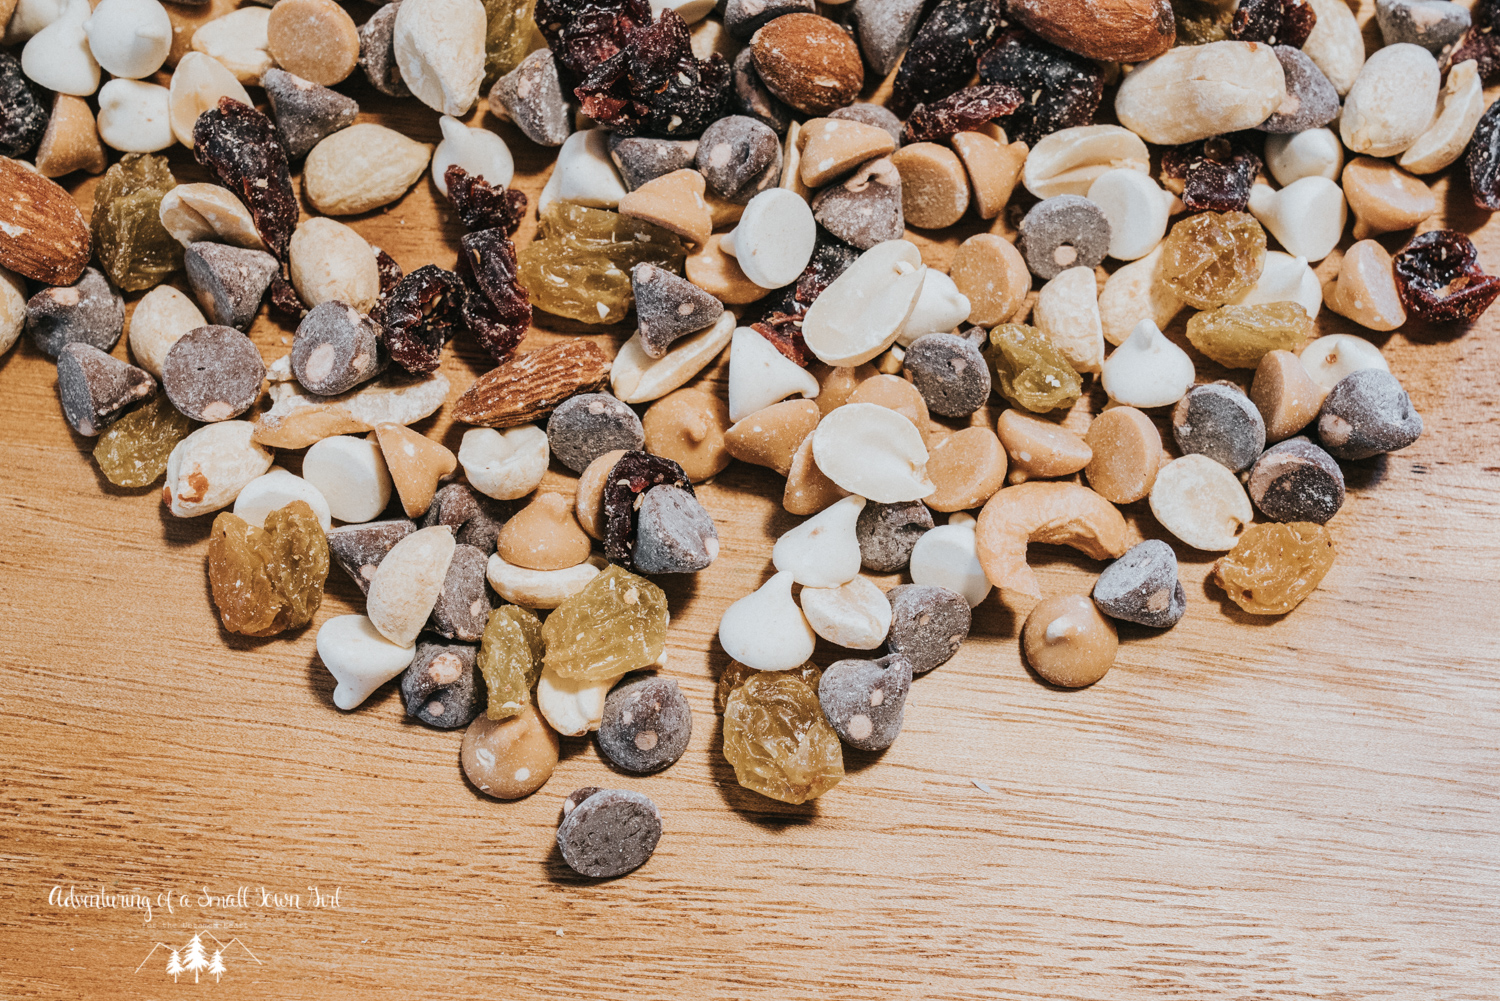 Homemade Trail Mix Recipe by Adventuring of a Small Town Girl (ASTG) - No Bake Raw Vegan Trail Mix - Make your own trail mix-26.jpg